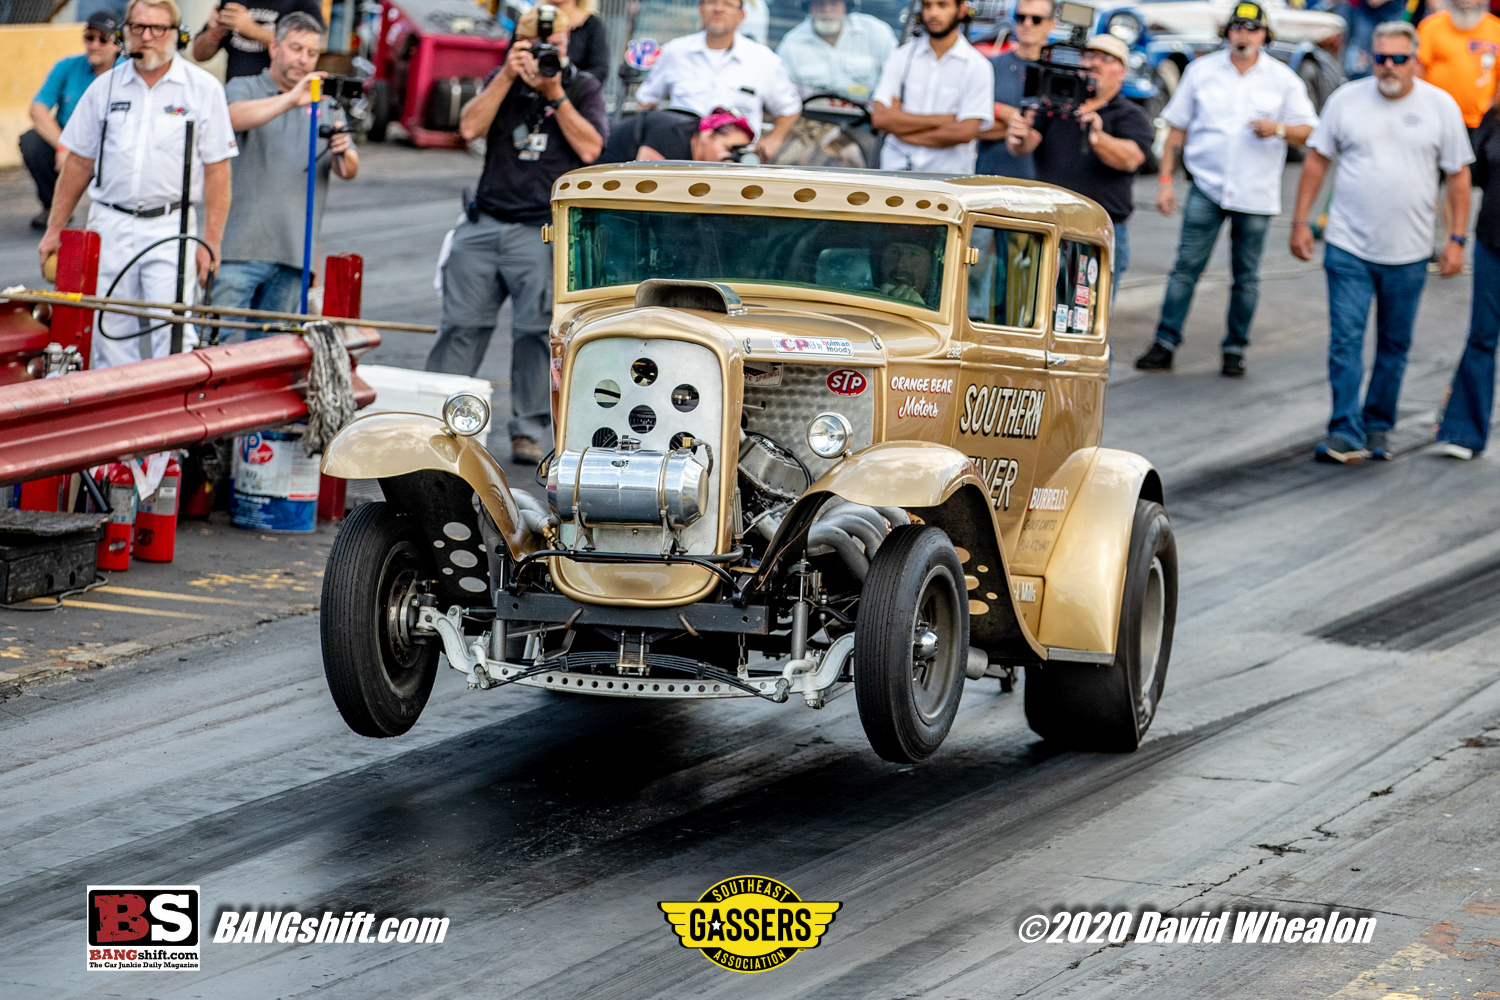 Drag Action Photos: The Southeast Gassers Association At Shadyside Dragway! More Wheels Up Madness!